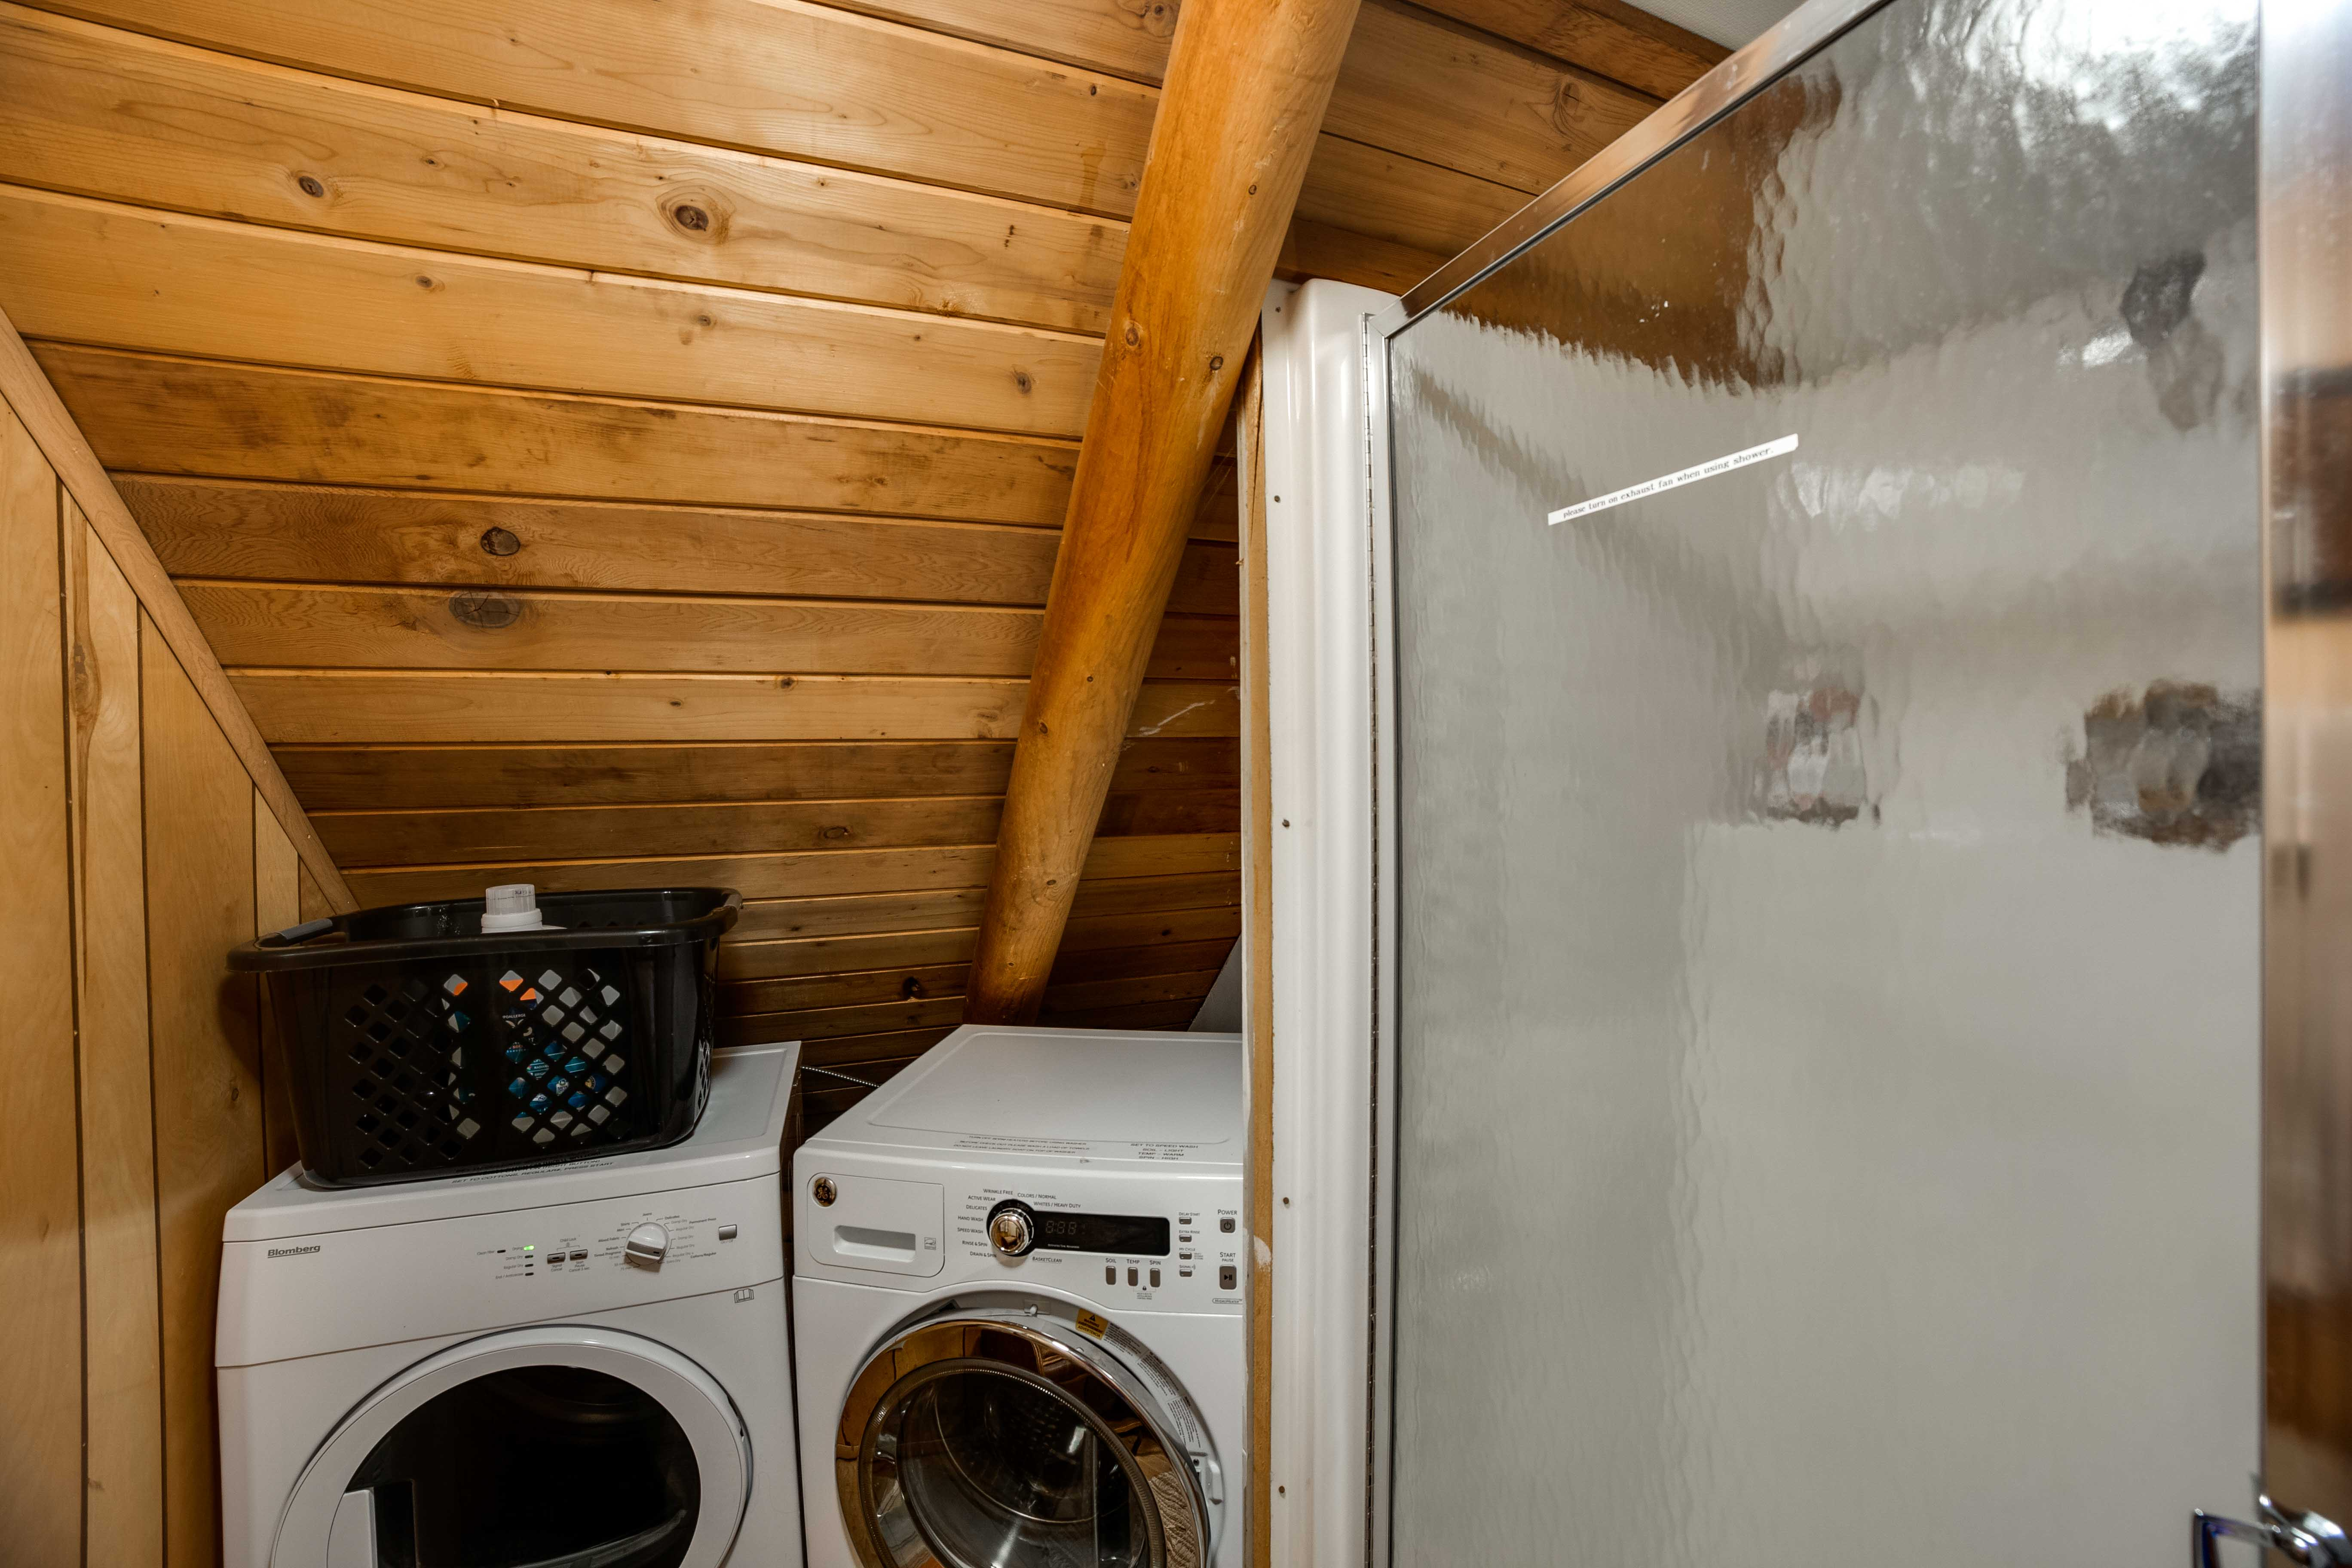 Upstairs laundry area with shower